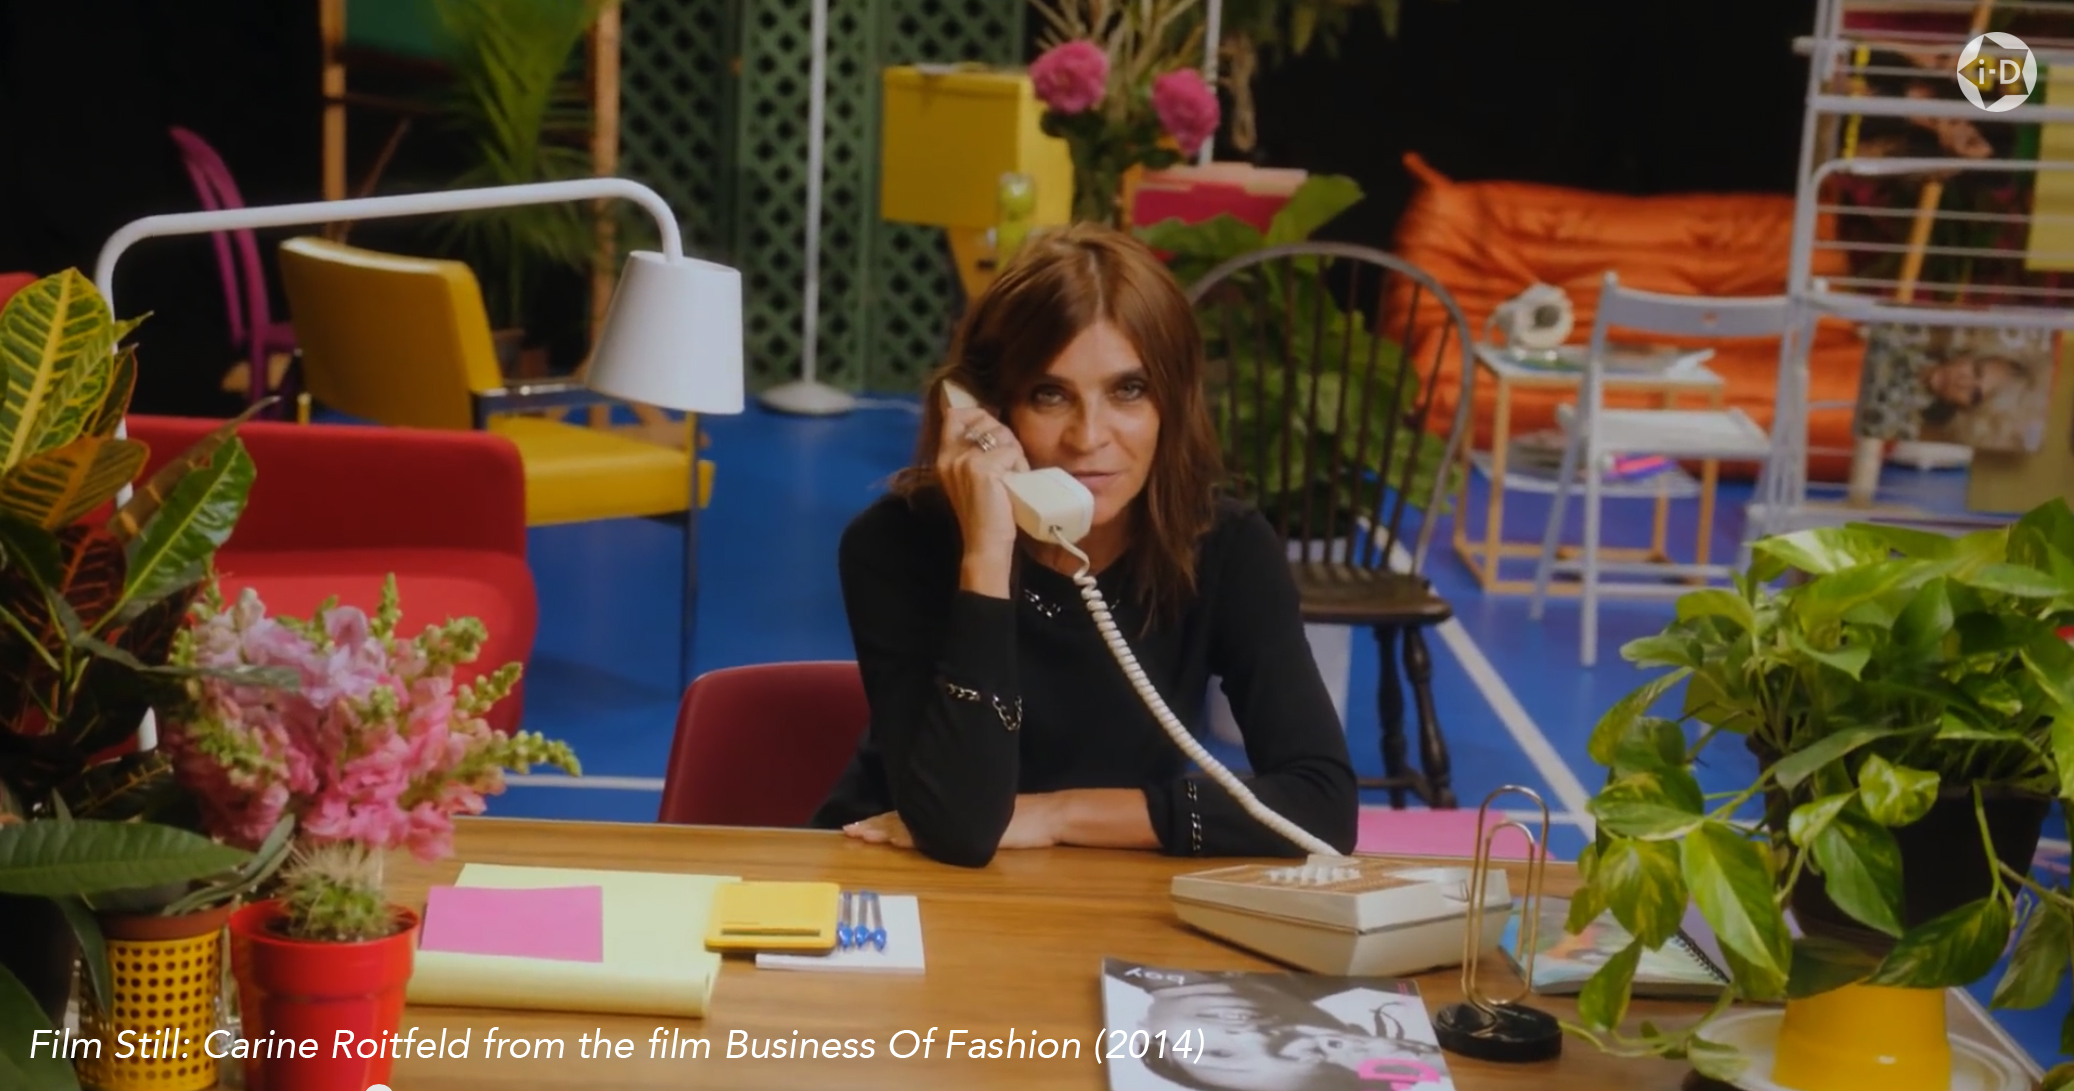 Film Still: Carine Roitfeld from the film Business Of Fashion (2014)